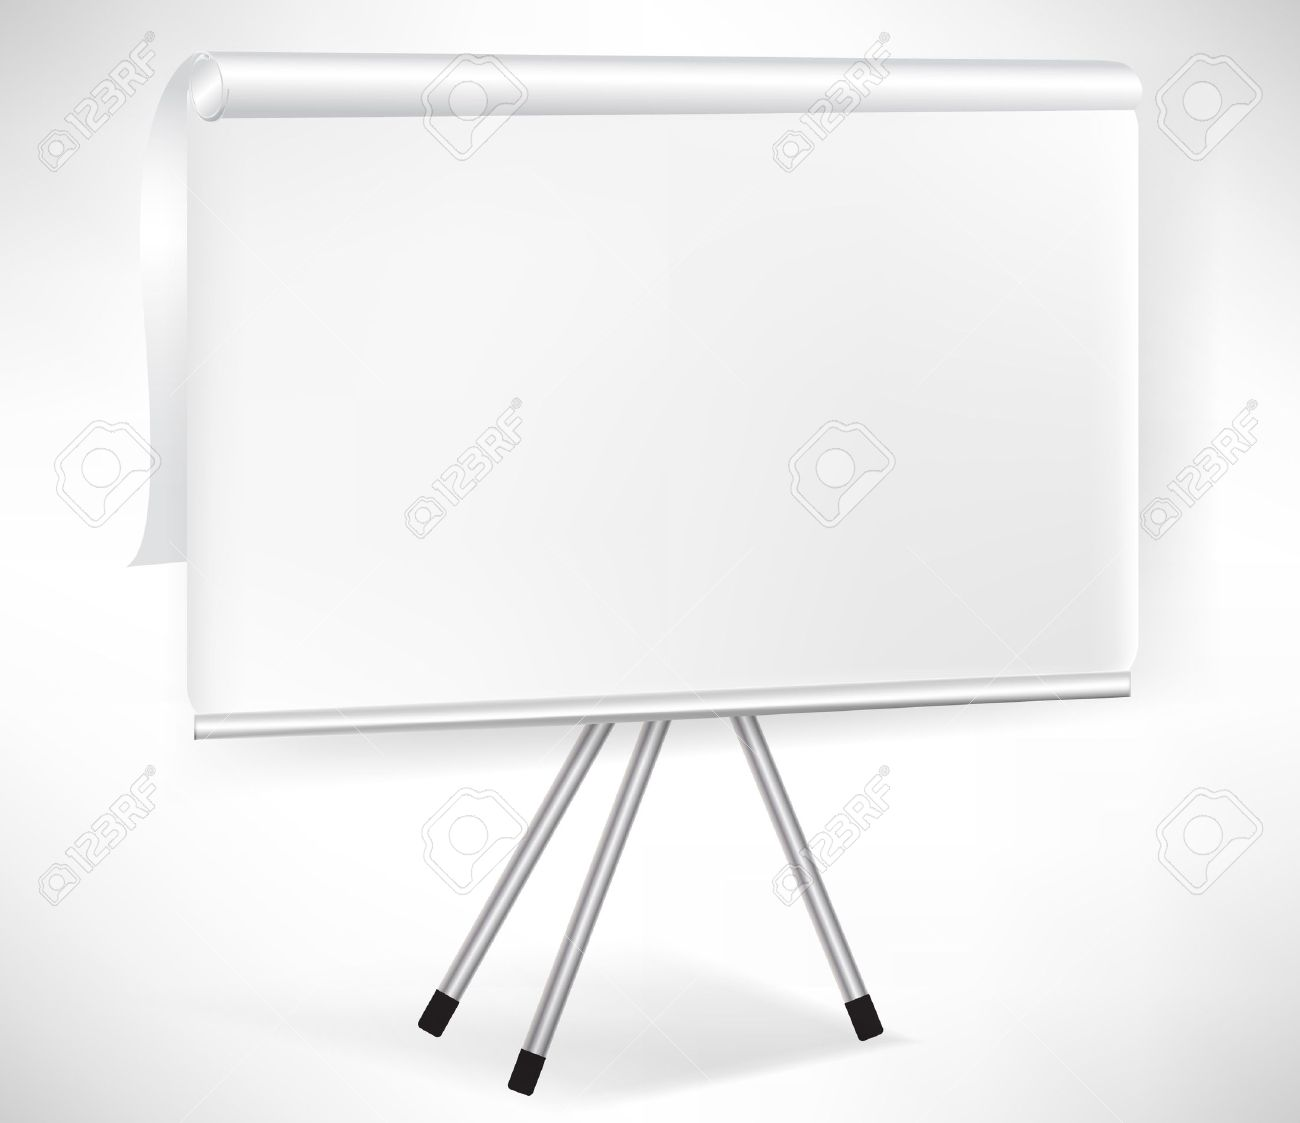 Paper Flip Board With Tripod Isolated On White Royalty Free ...